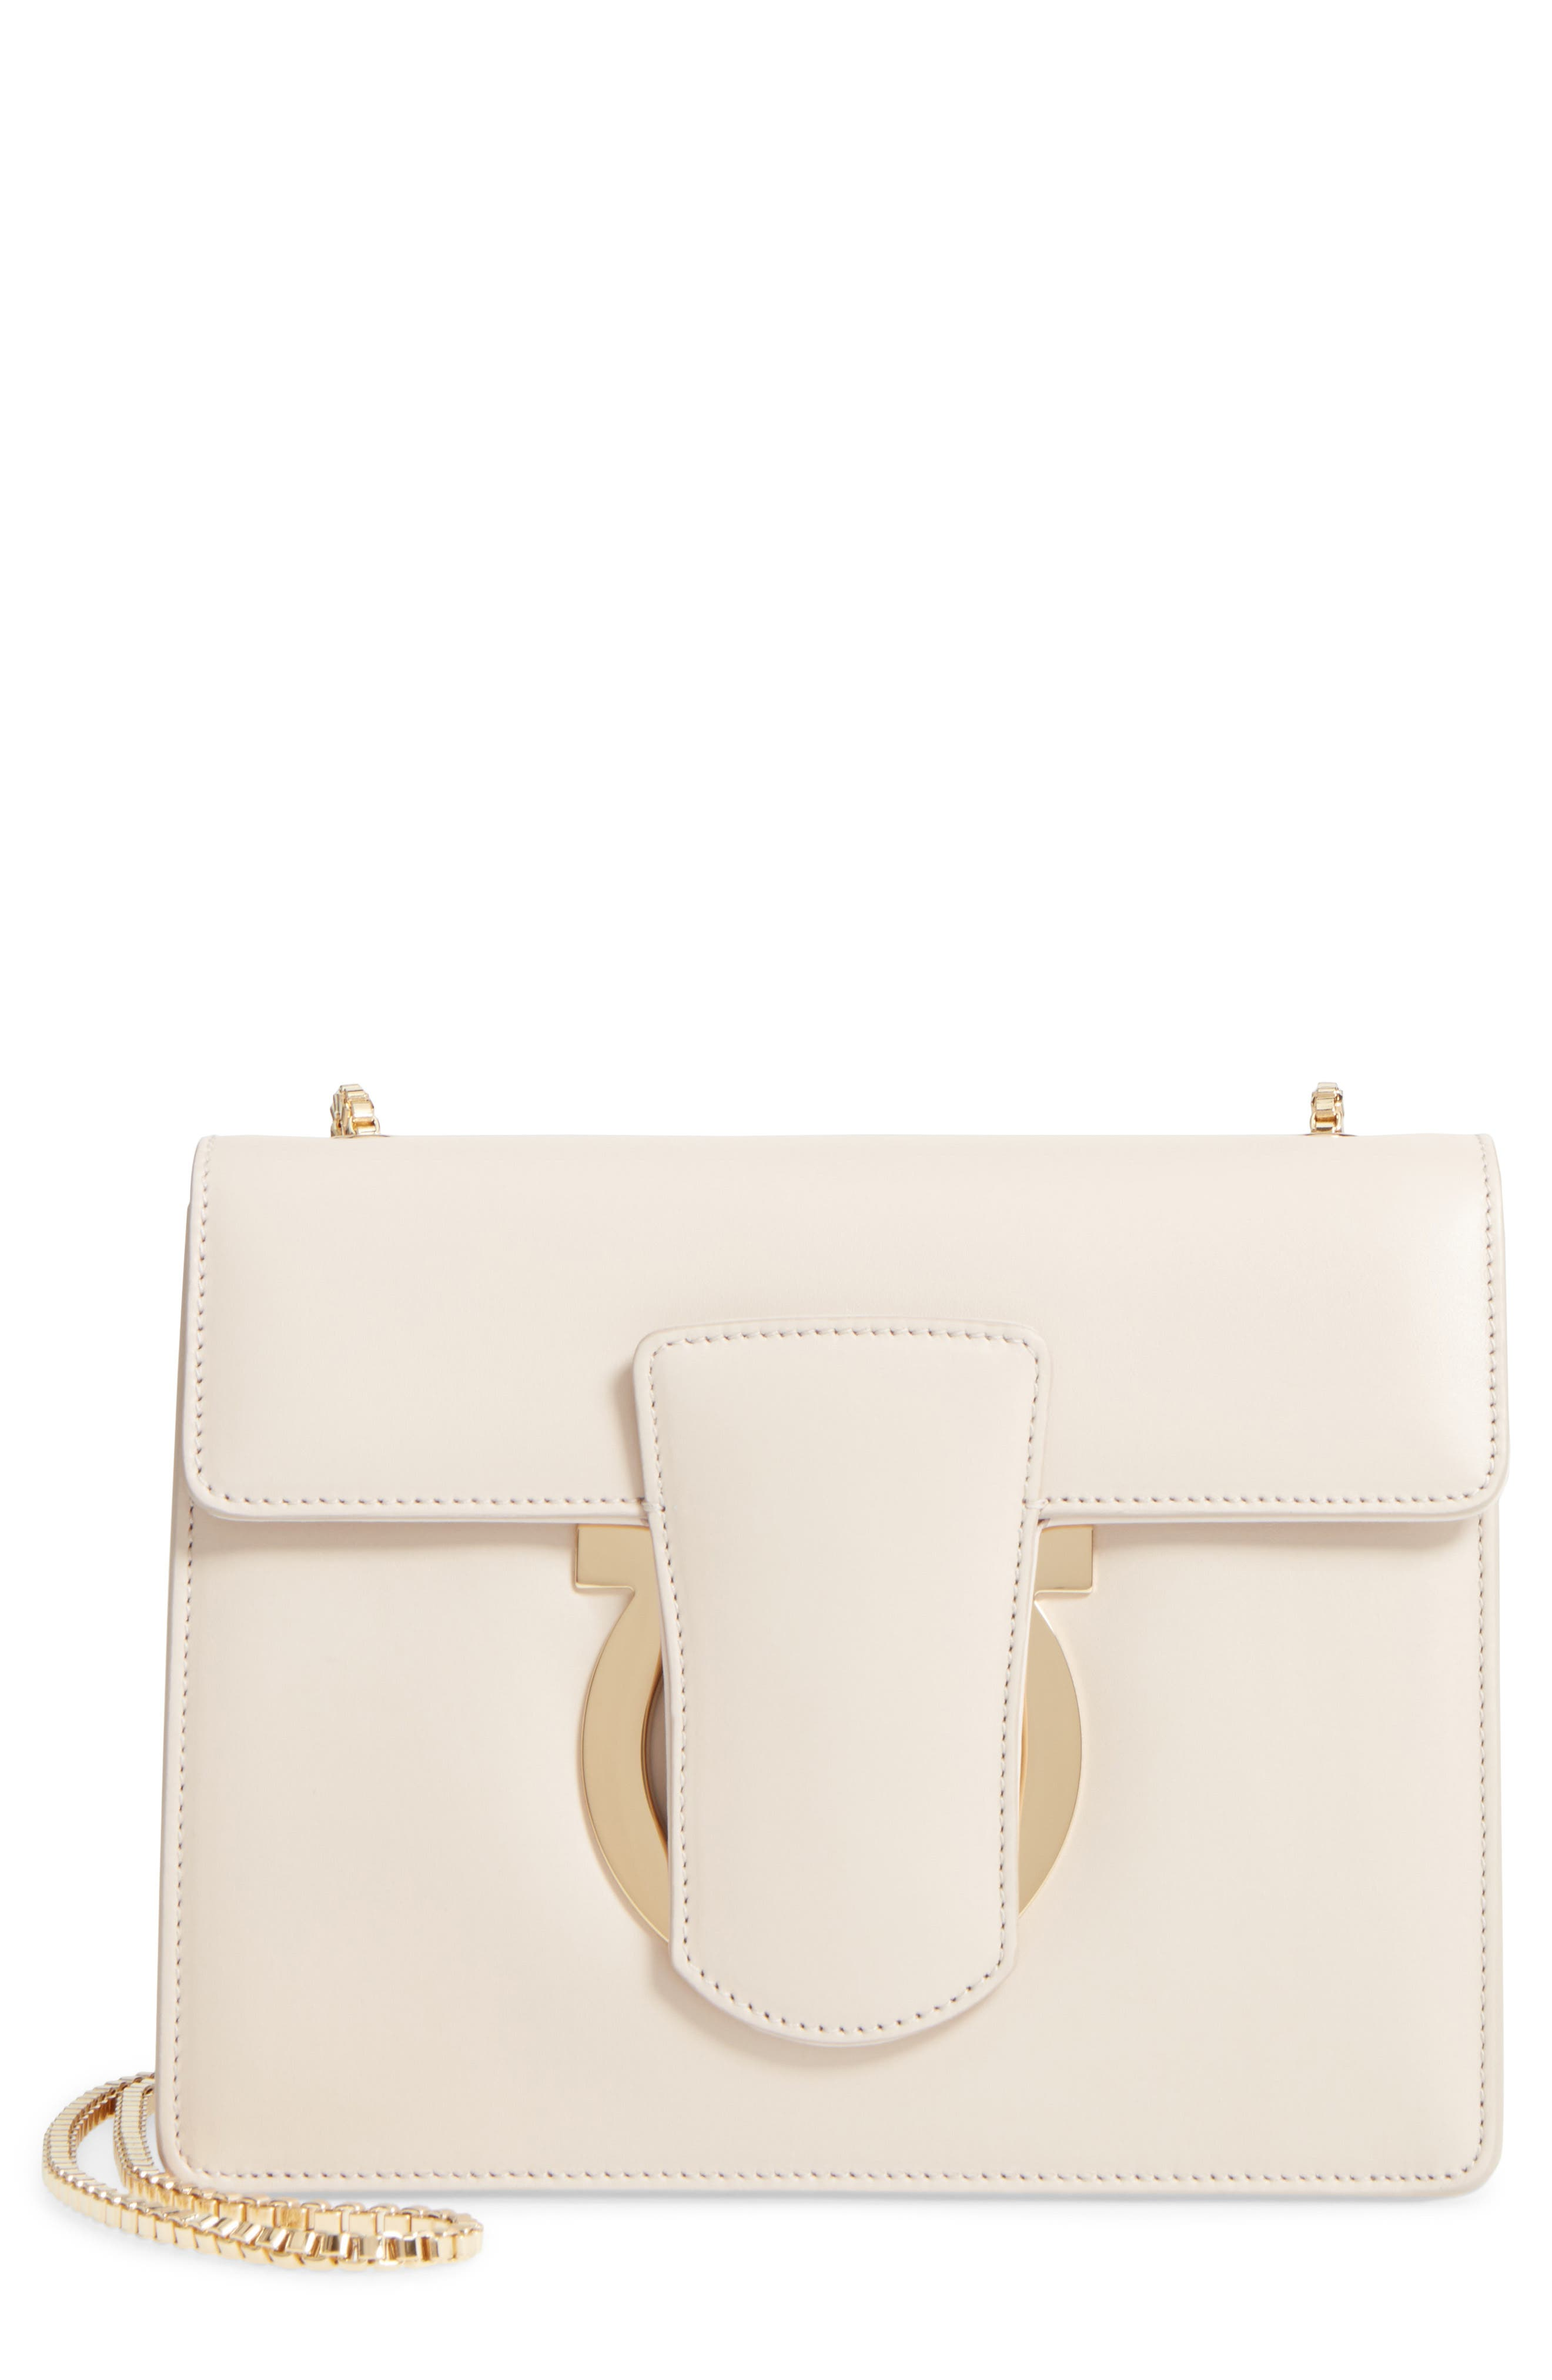 Small Thalia Leather Crossbody Bag,                             Main thumbnail 1, color,                             650